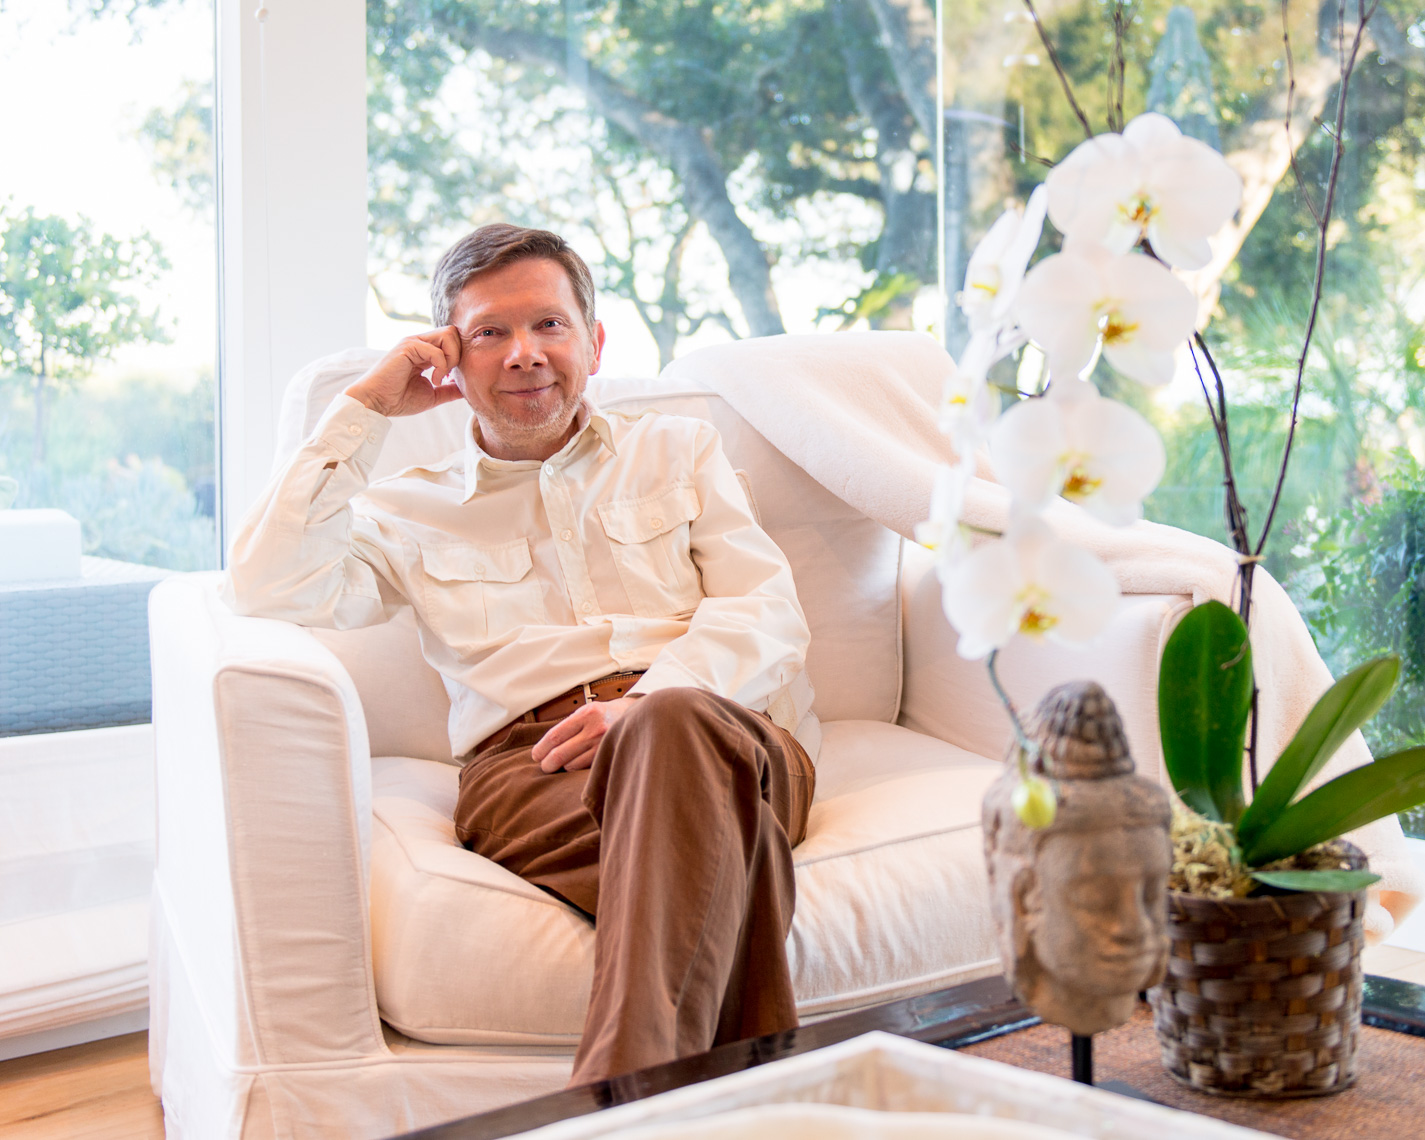 Eckhart Tolle in Montecito for Spirituality & Health magazine, February 28, 2013. © Kevin Steele, one time print rights